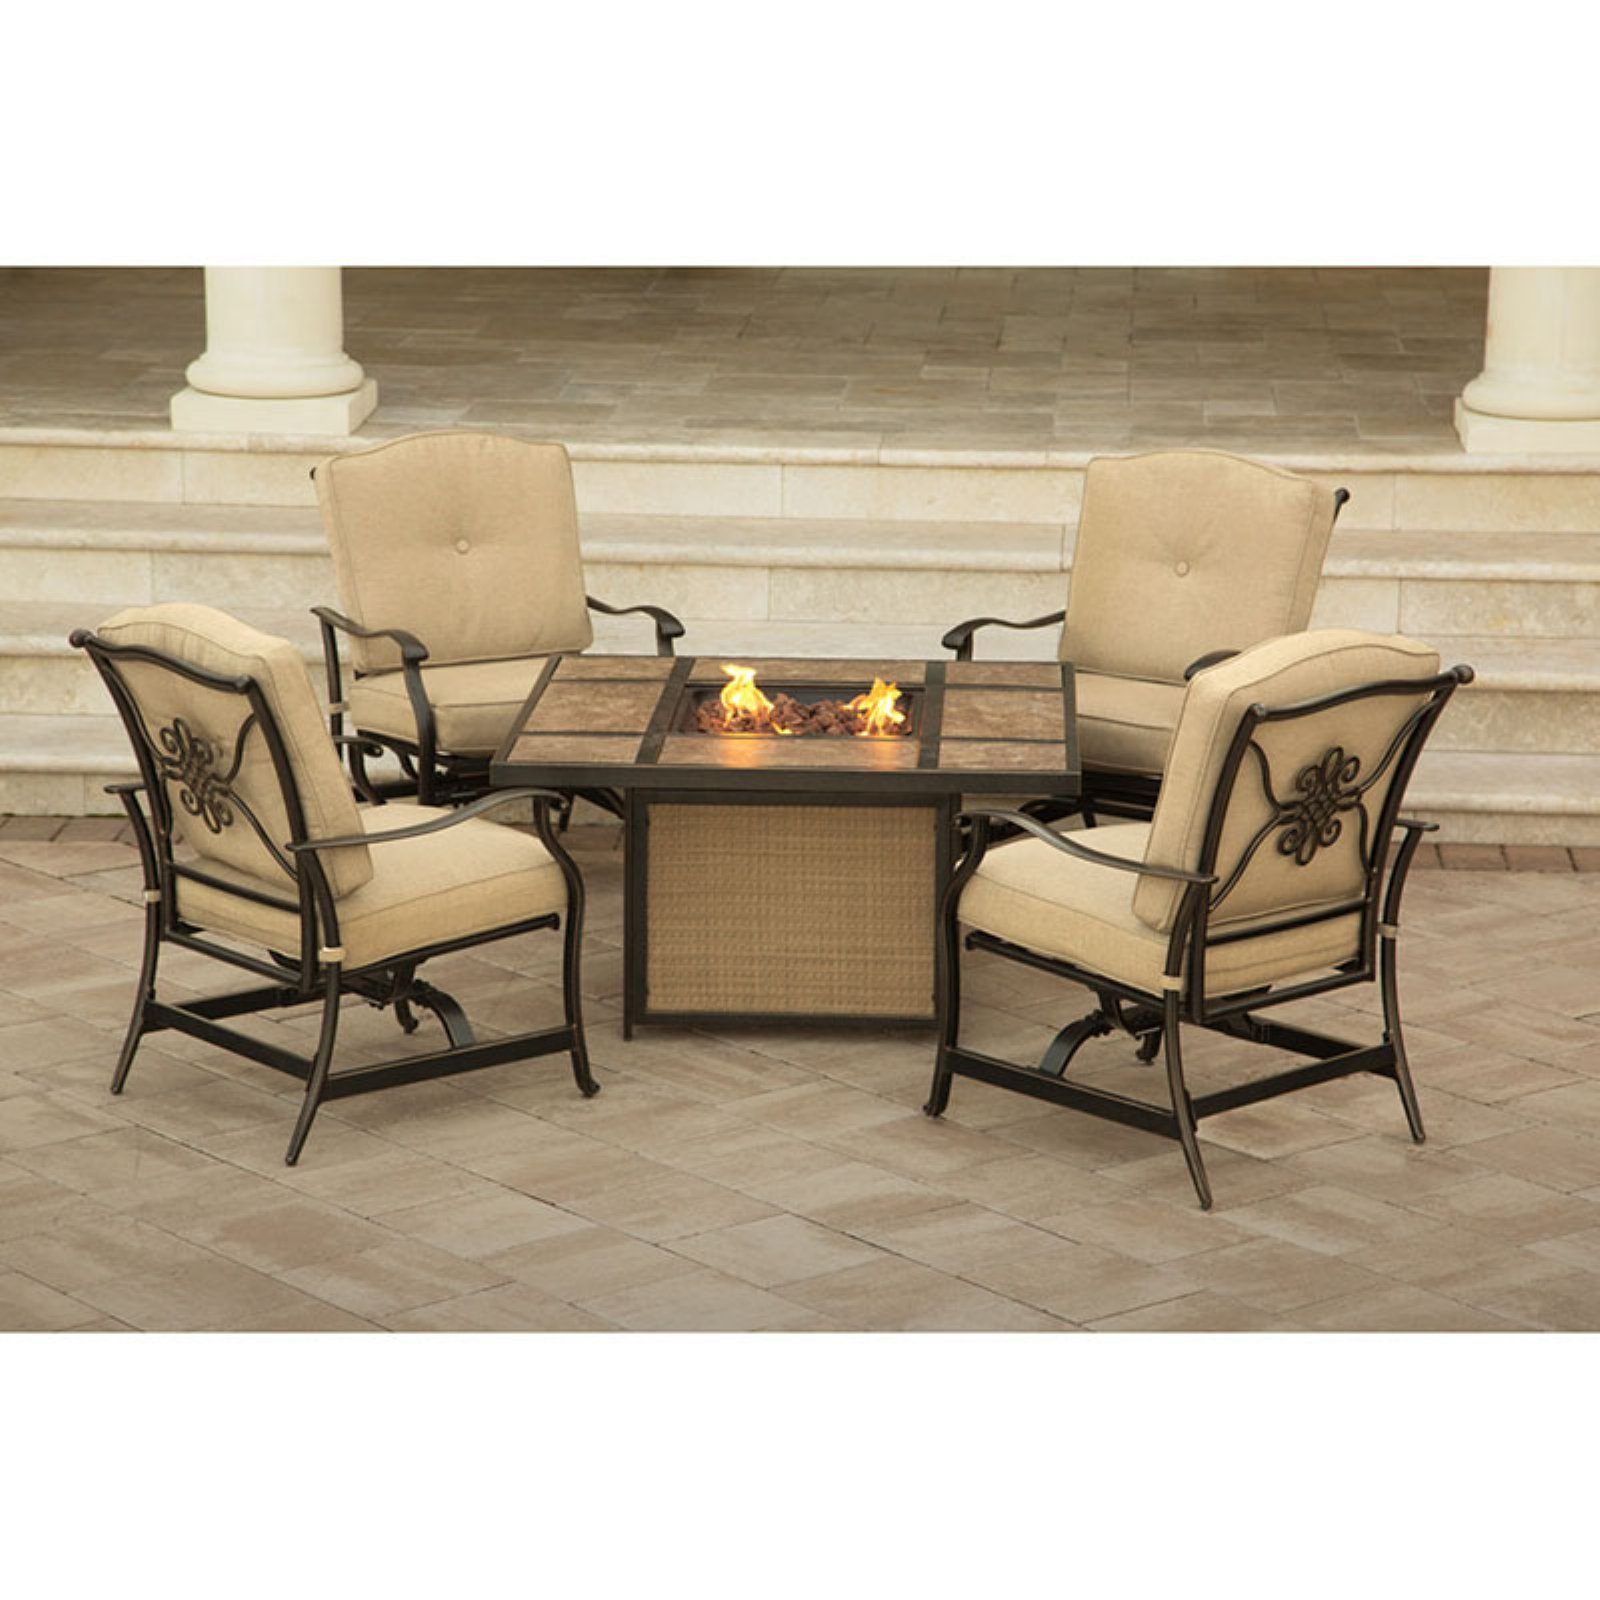 Hanover Outdoor Traditions 5-Piece Tile-Top Fire Pit Conversation Set, Natural Oat/Bronze